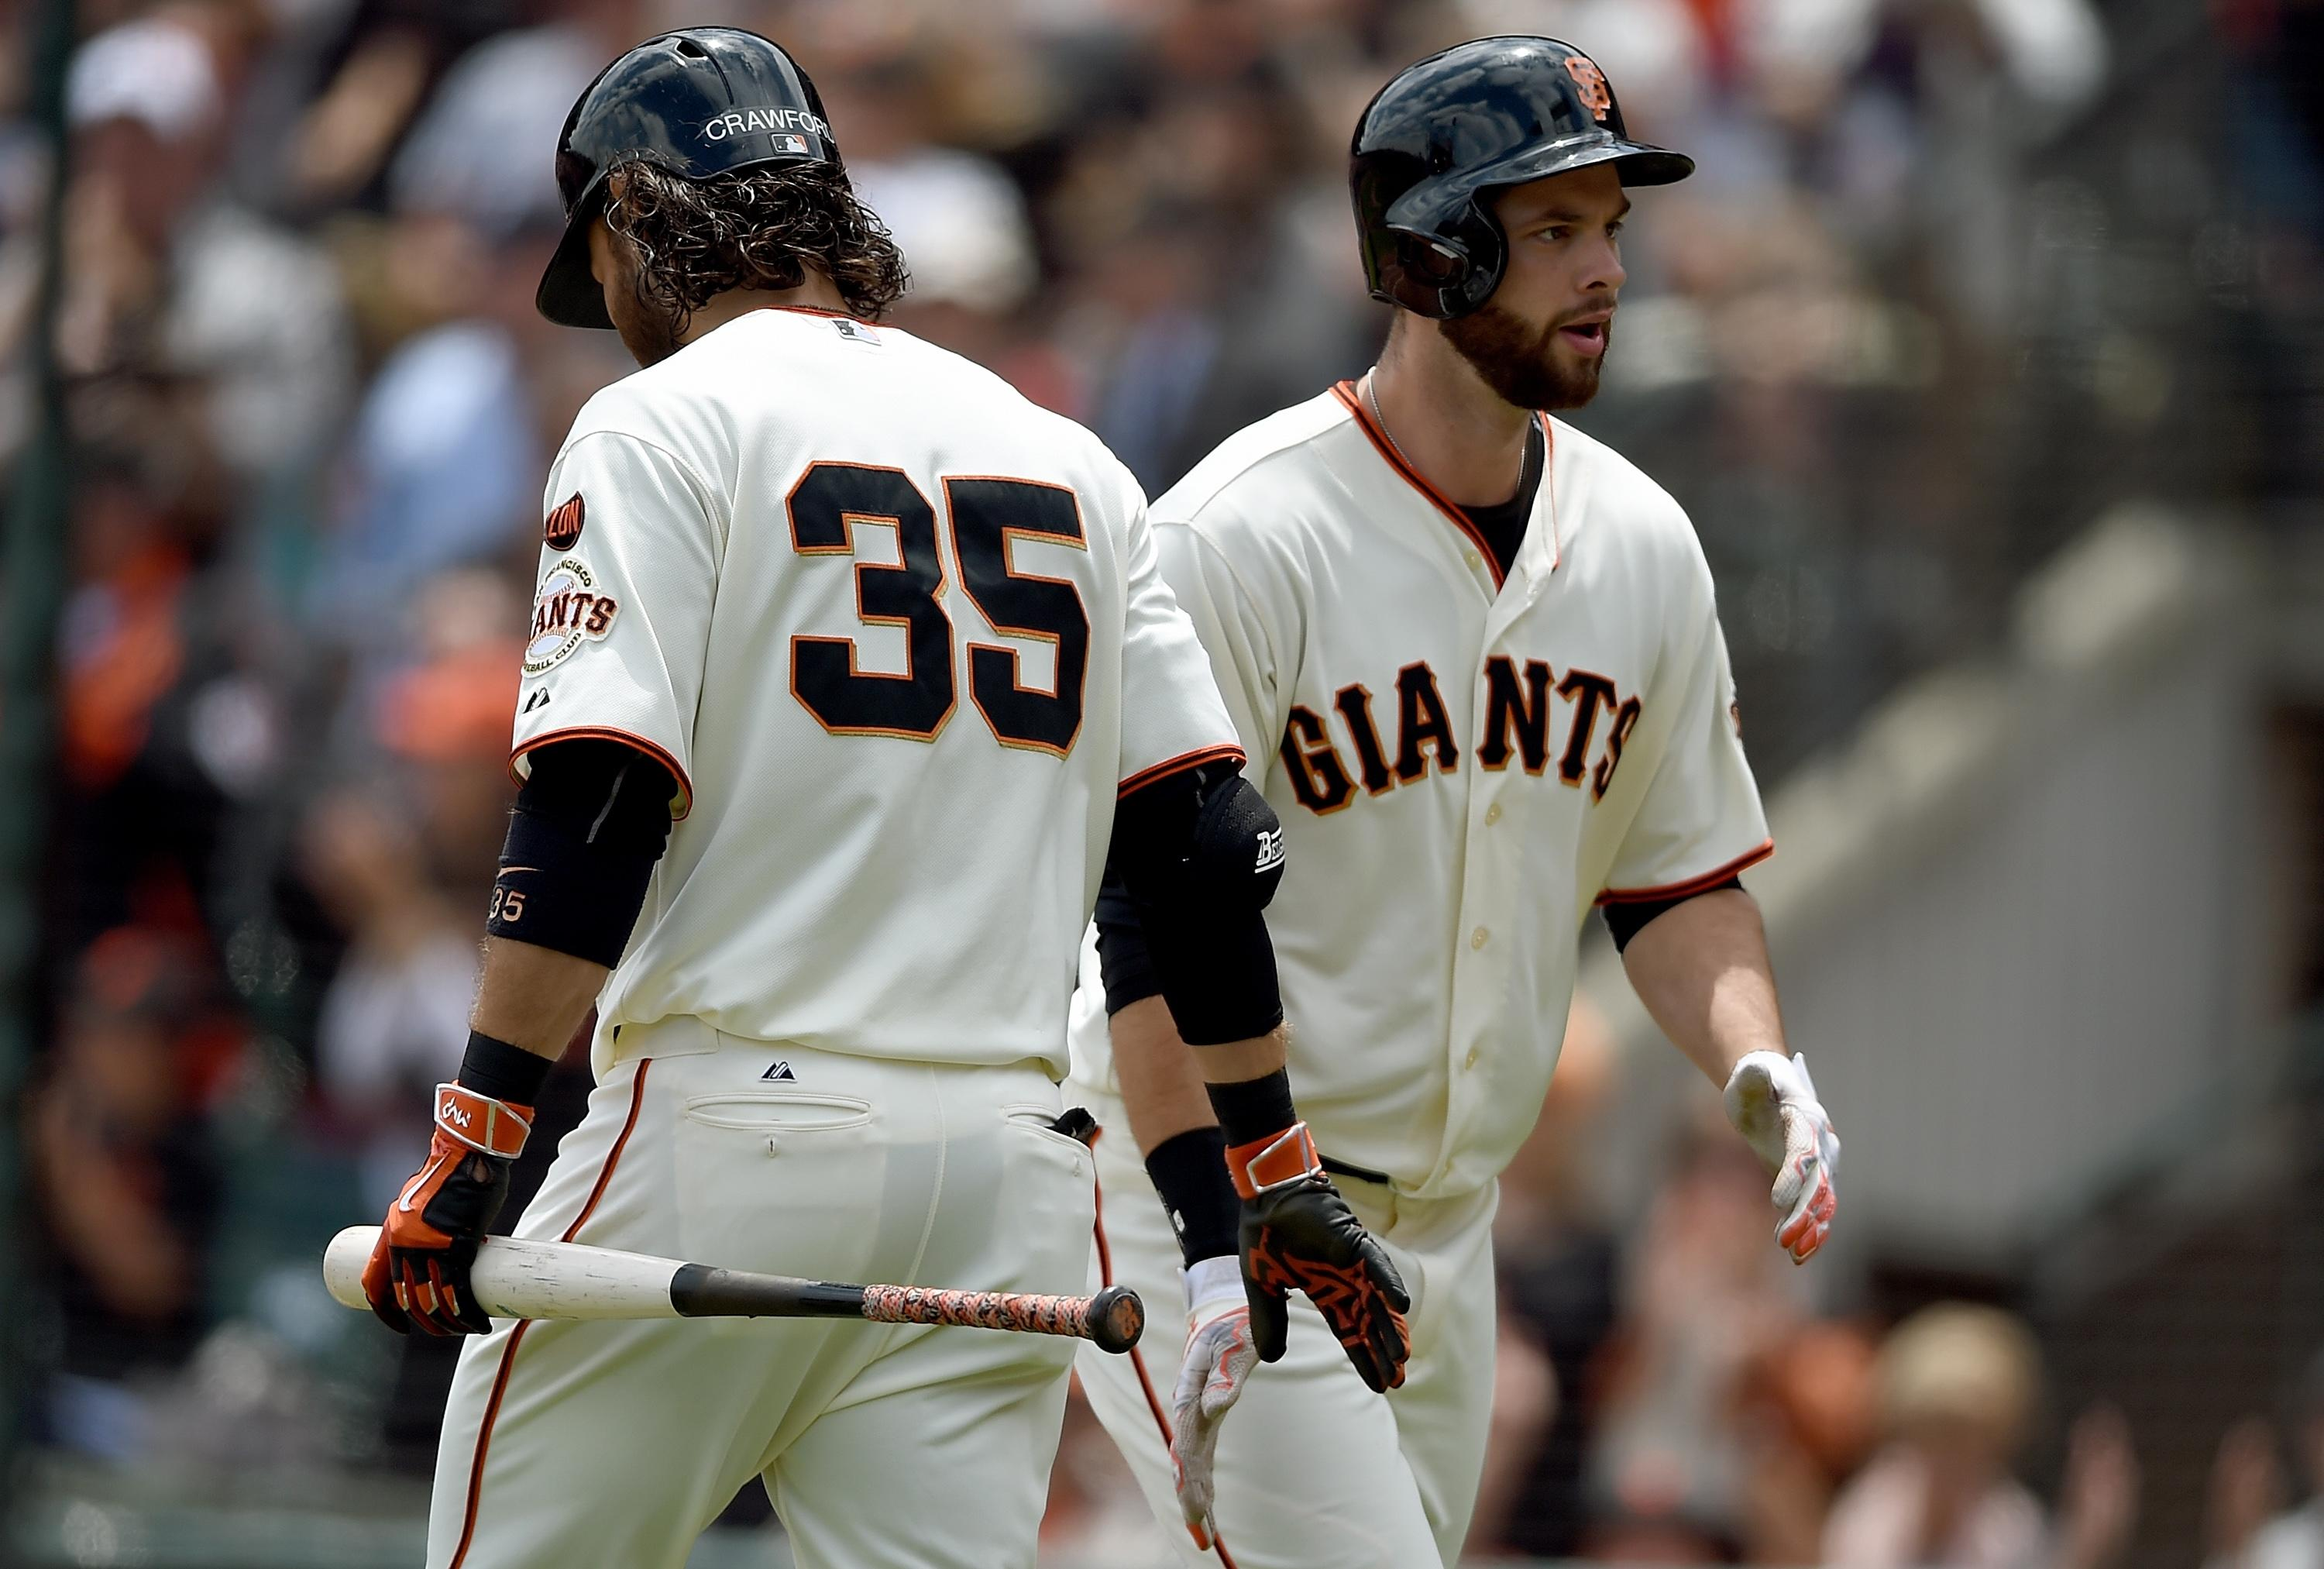 Mostly MLB Notes: Talking Brandon Belt, Stephen Strasburg and a look around the league